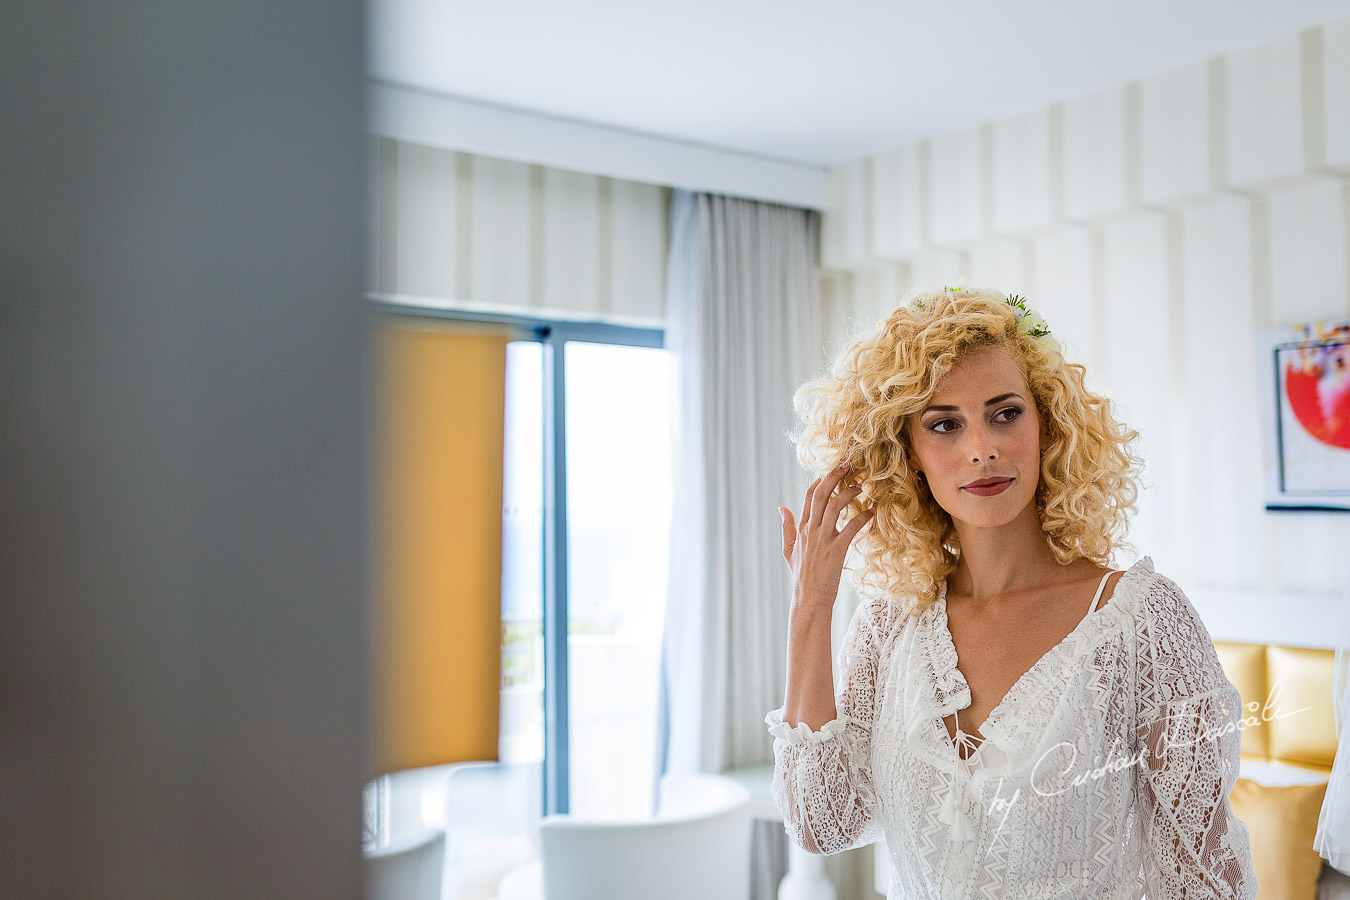 Bridal make-up moments captured before her Jewish Wedding Ceremony in Cyprus.